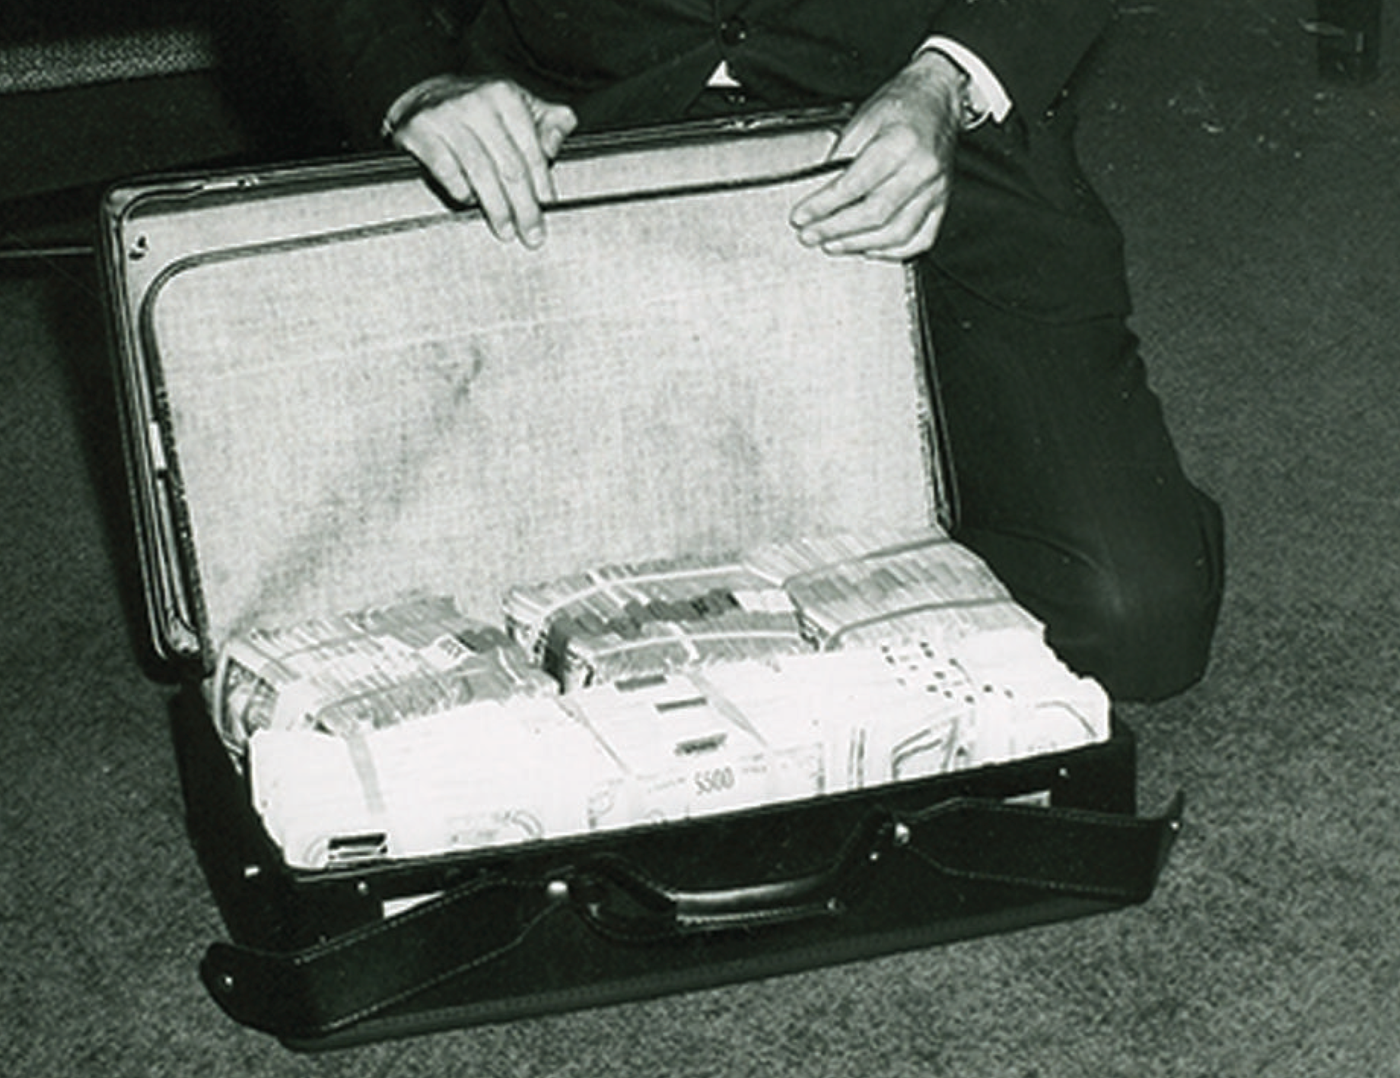 Kidnappers demanded a ransom of $240,000 for Frank Sinatra, Jr. after they abducted him on December 8, 1963. Agents used this suitcase for the cash provided by the Sinatra family. Sinatra, just beginning his career in music, was performing at Harrah's Club Lodge in Lake Tahoe on the border of California and Nevada when he was kidnapped. Three men were caught and convicted of the crime; Sinatra was found unharmed after being freed by one of his captors.